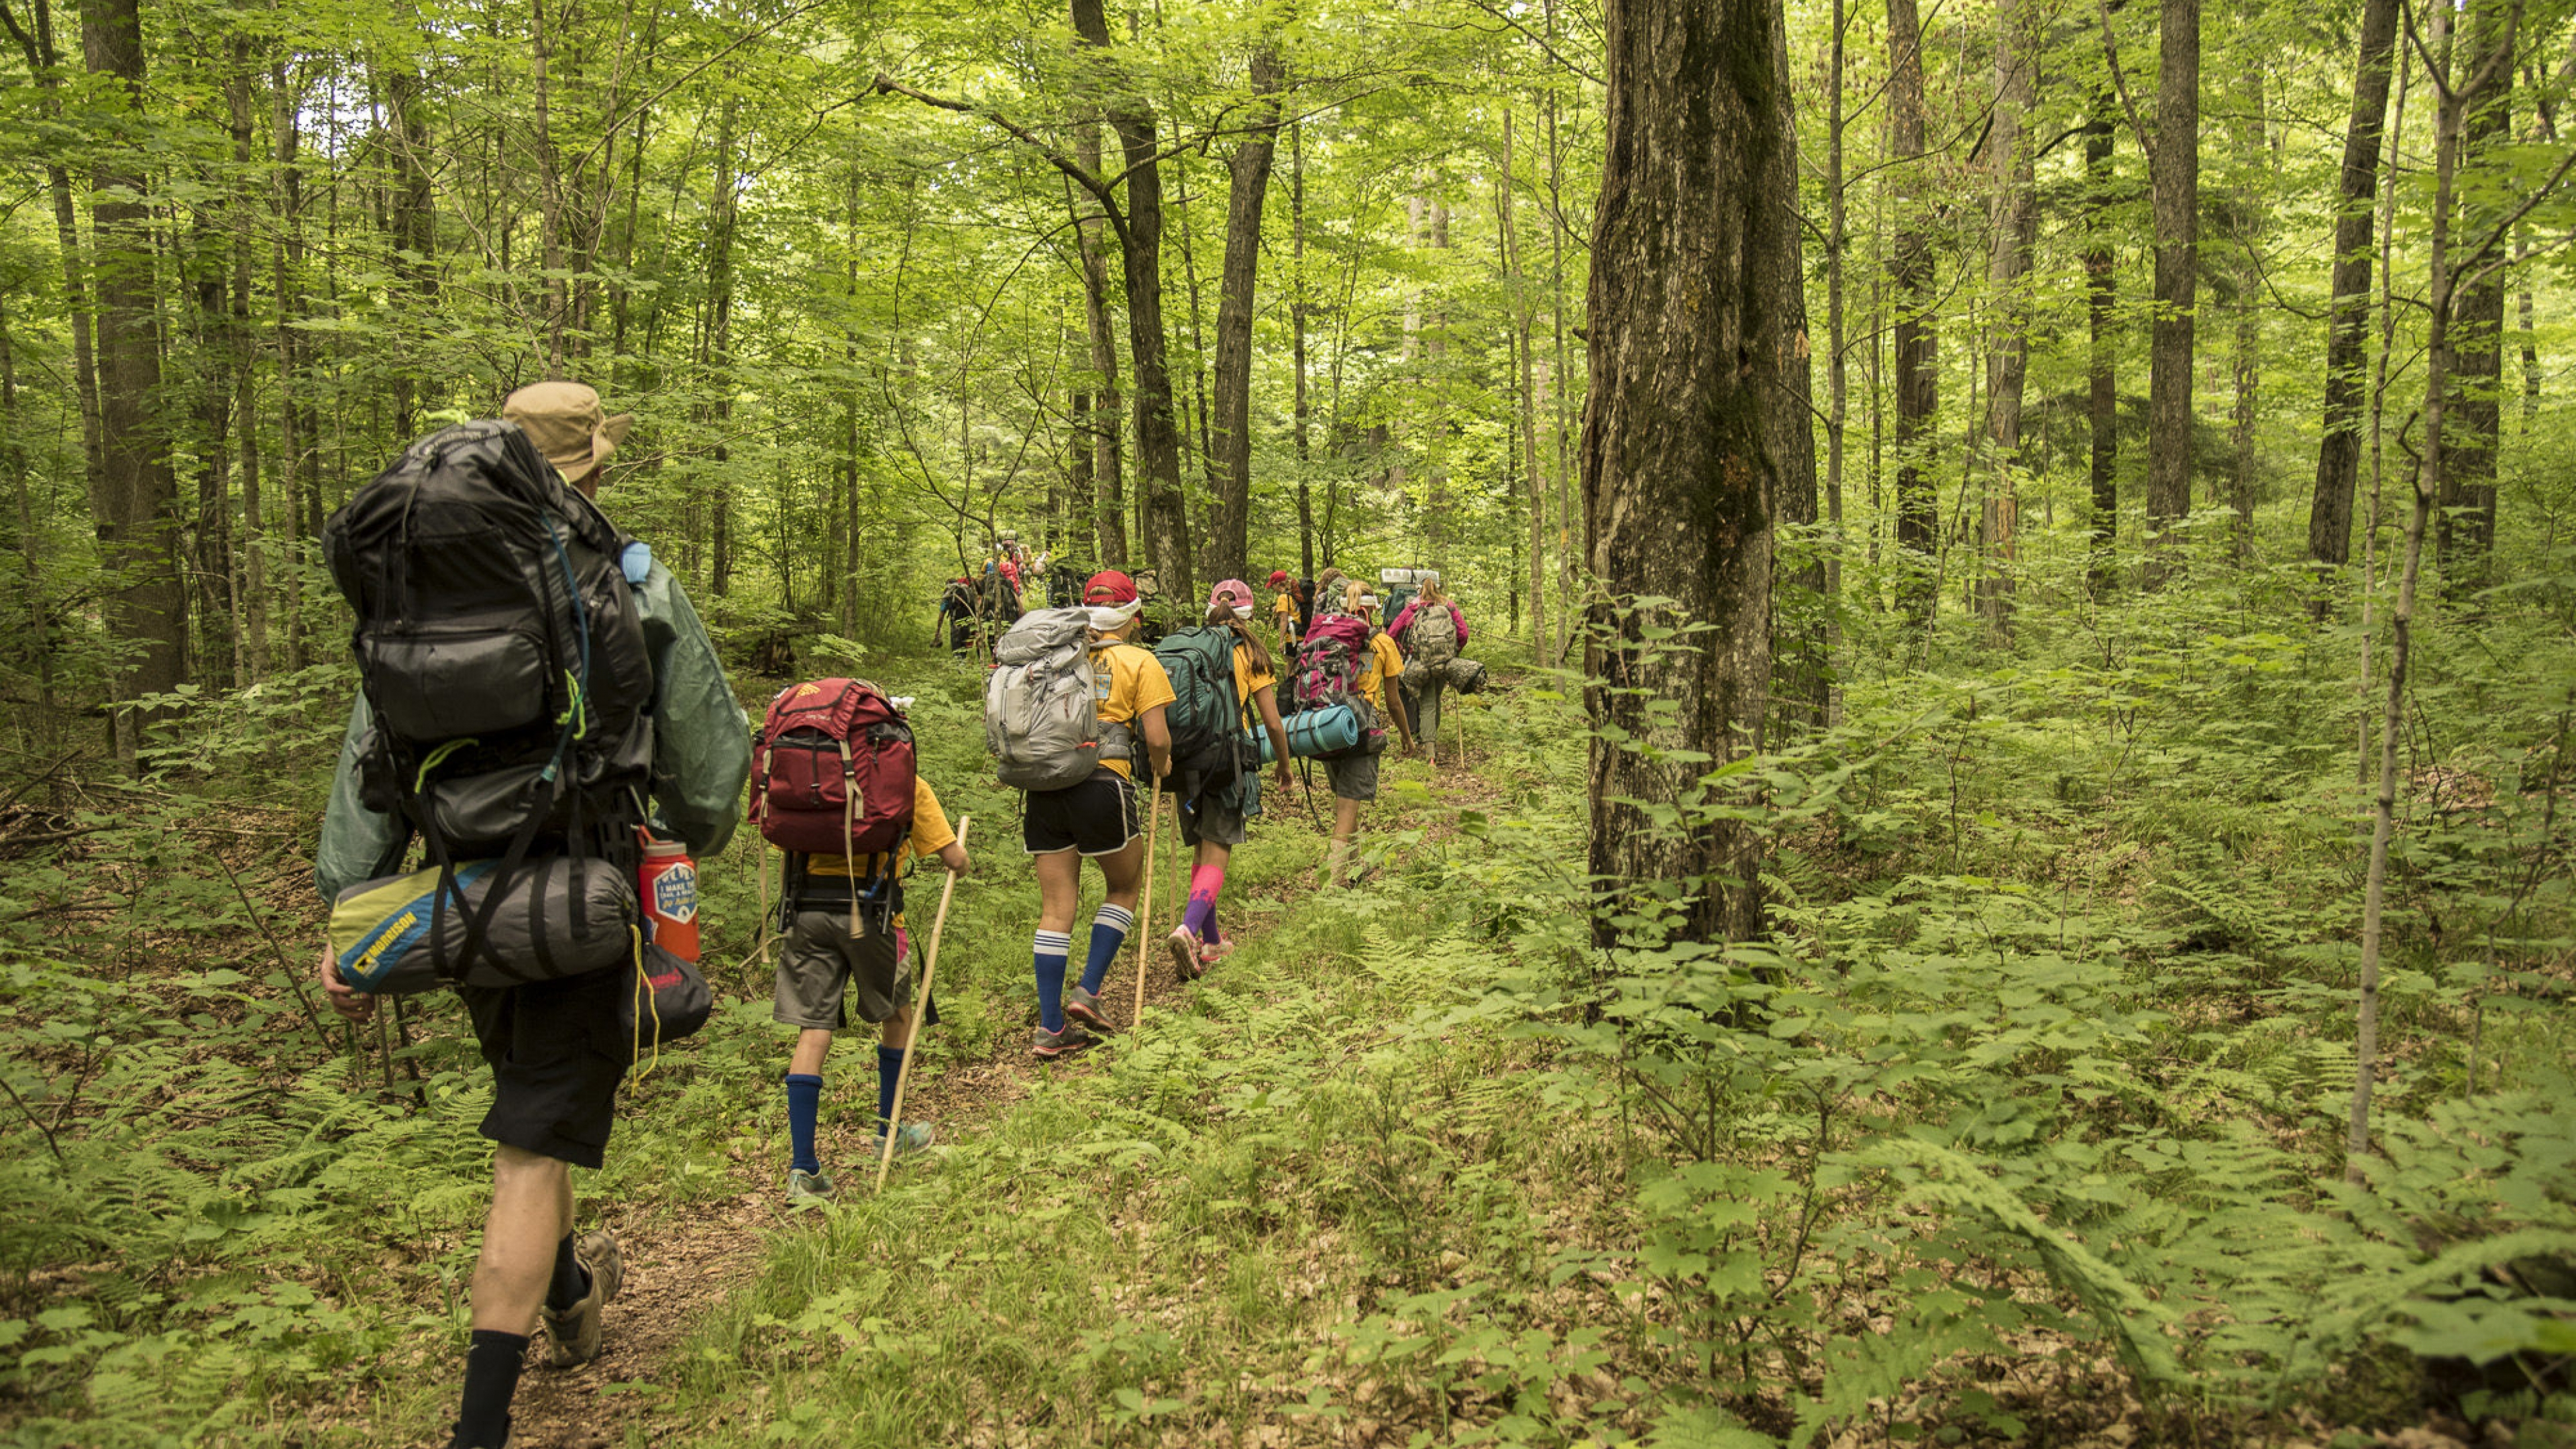 Group of youth hiking in a wooded forest with backpacking gear